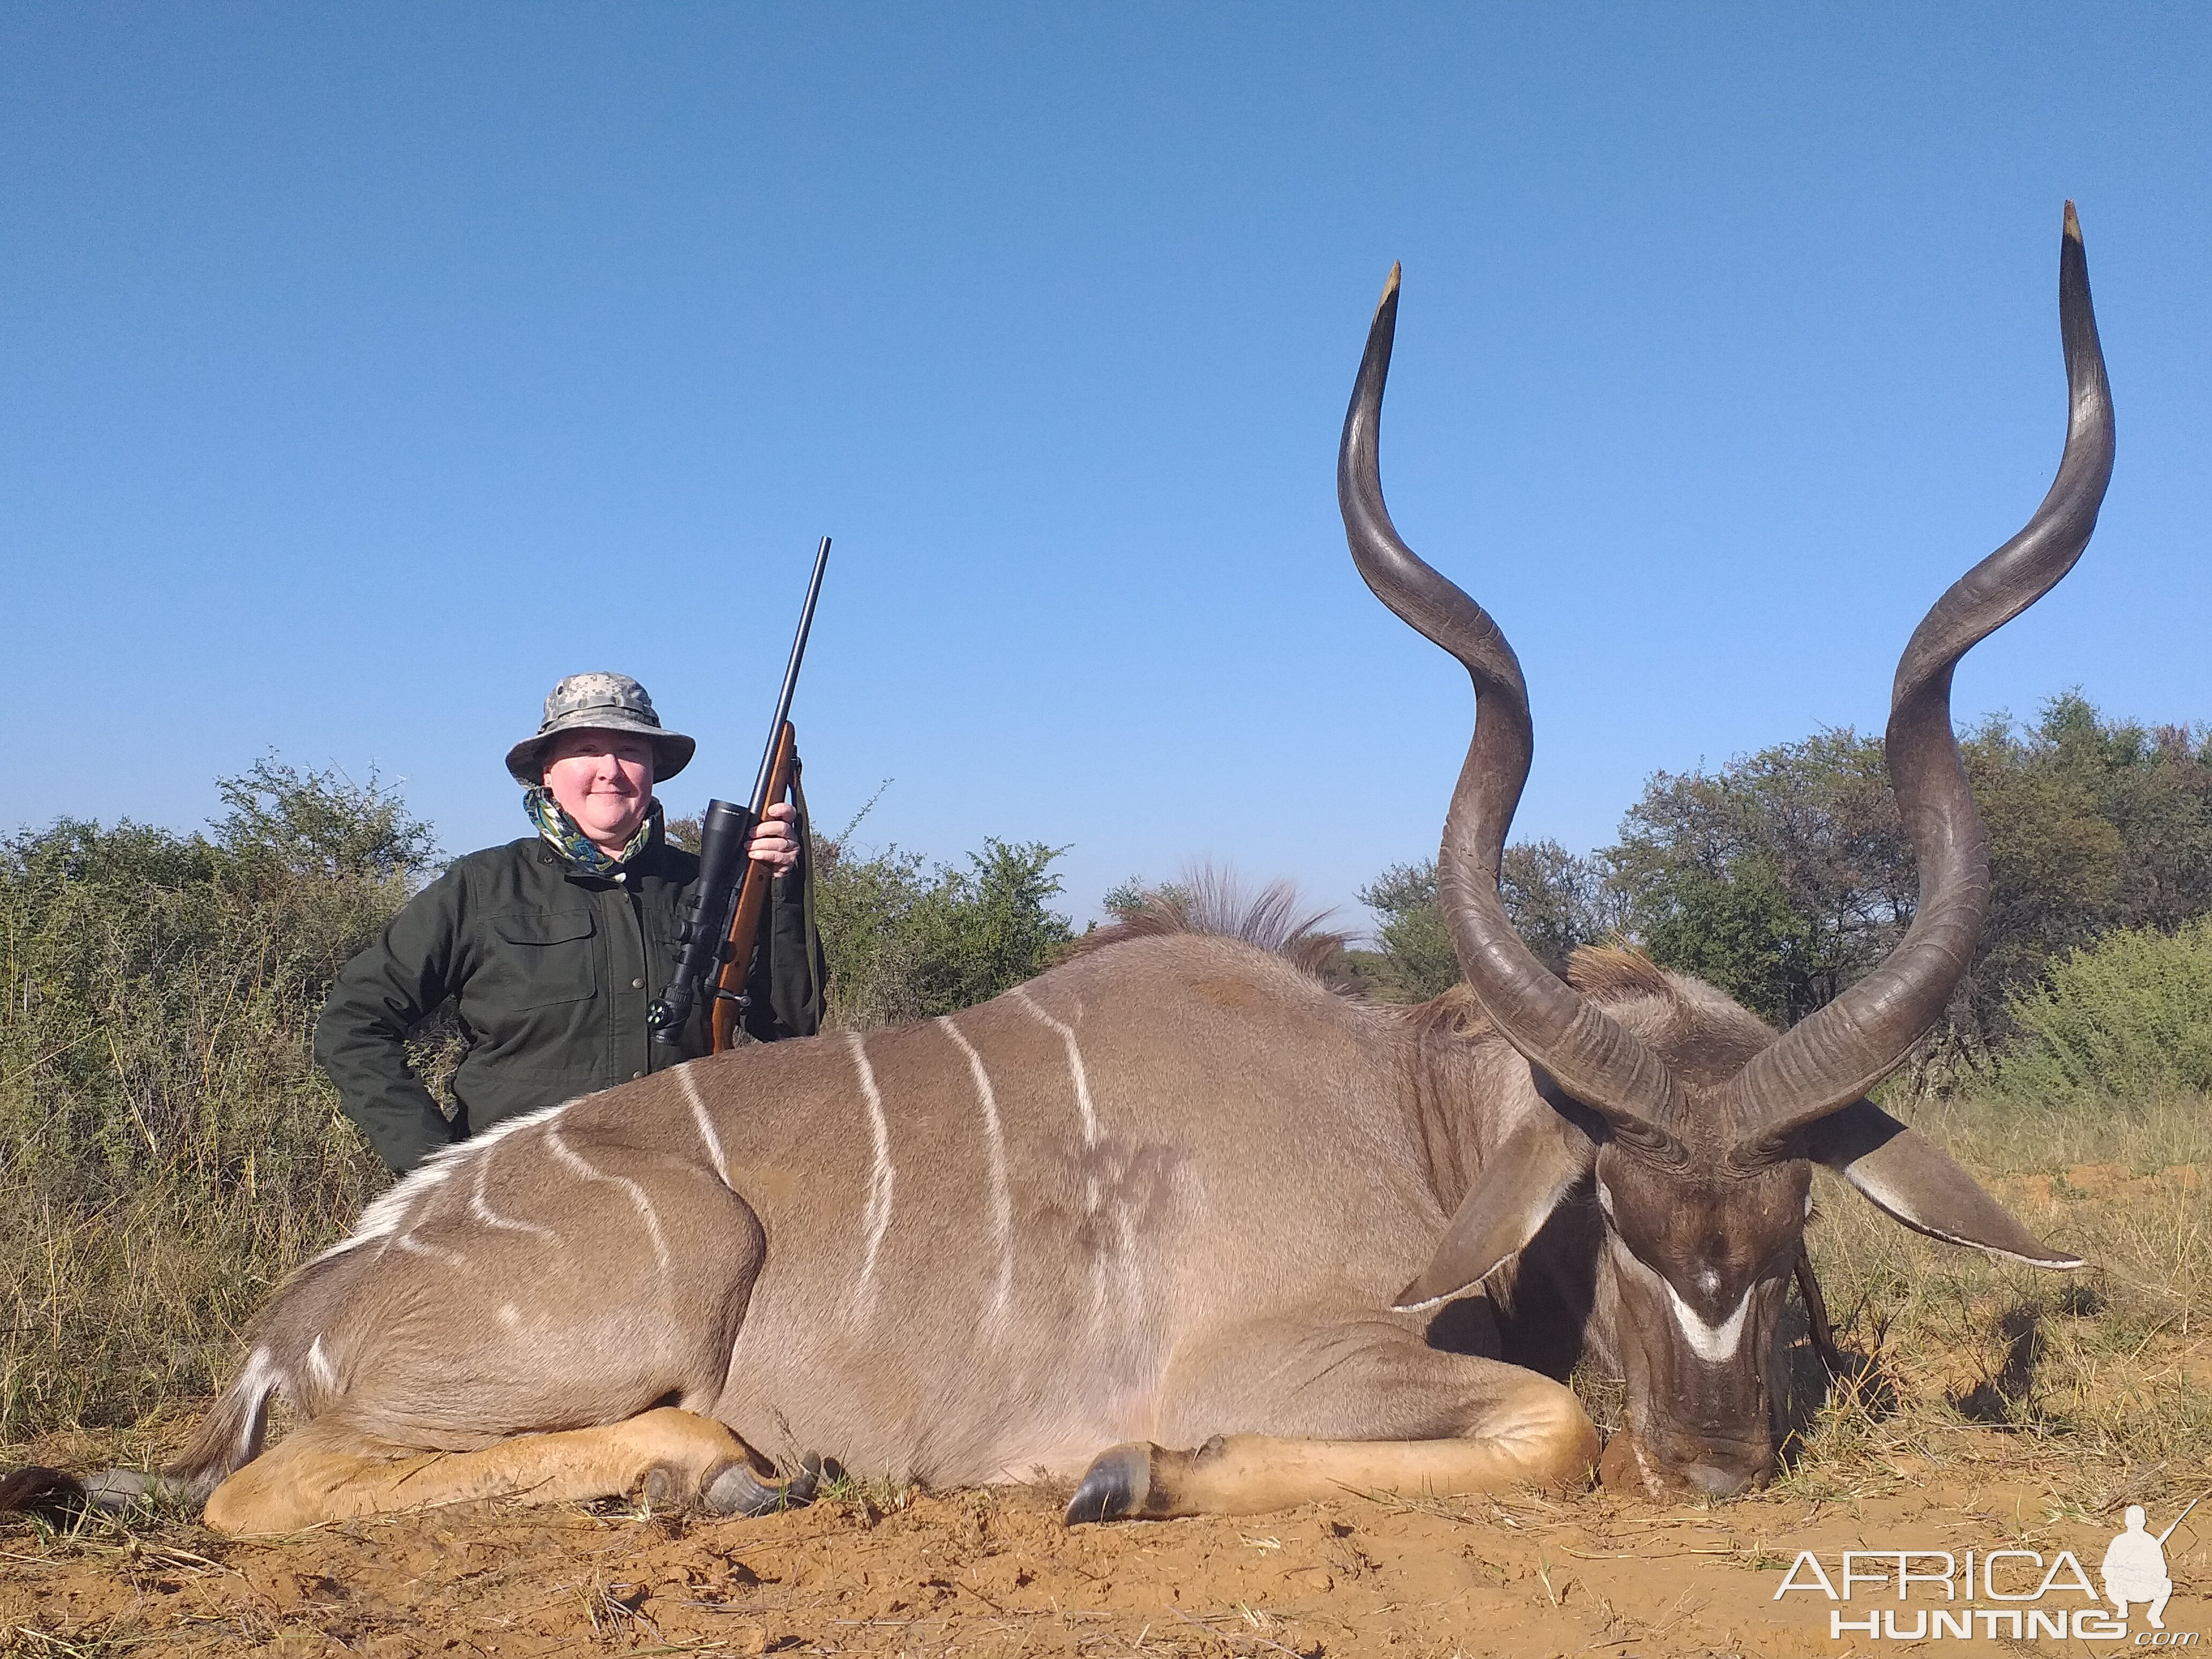 Kudu at Sandveld Nature Reserve